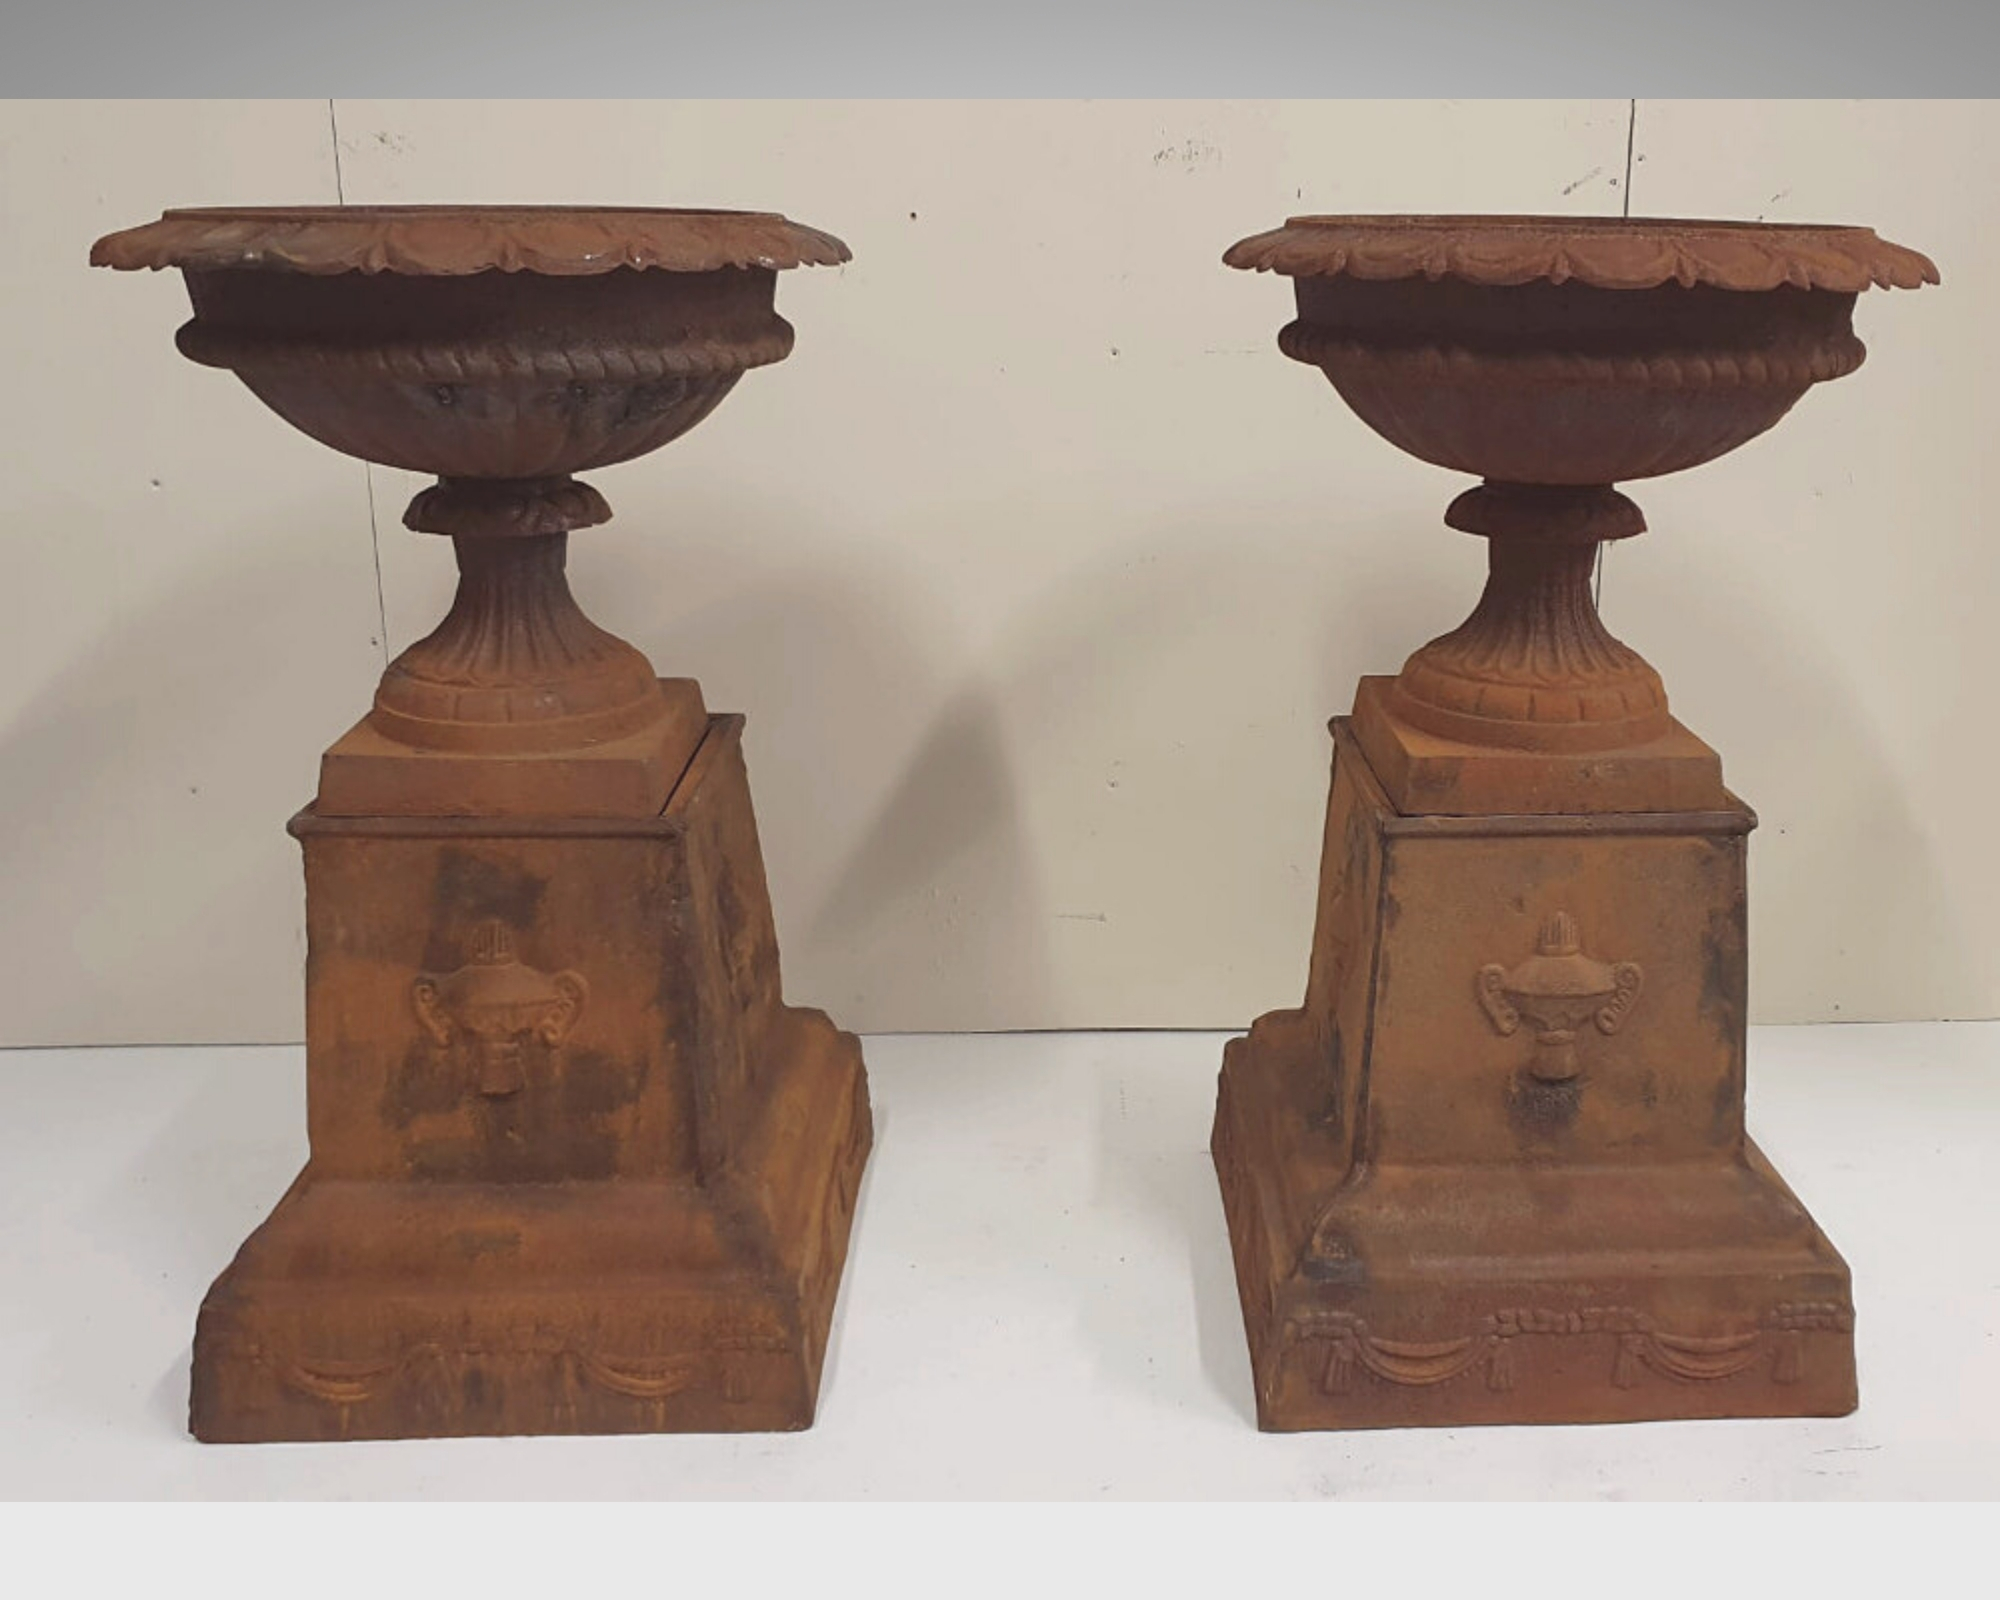 Pair of 20th Century Cast Iron Urns on Stands